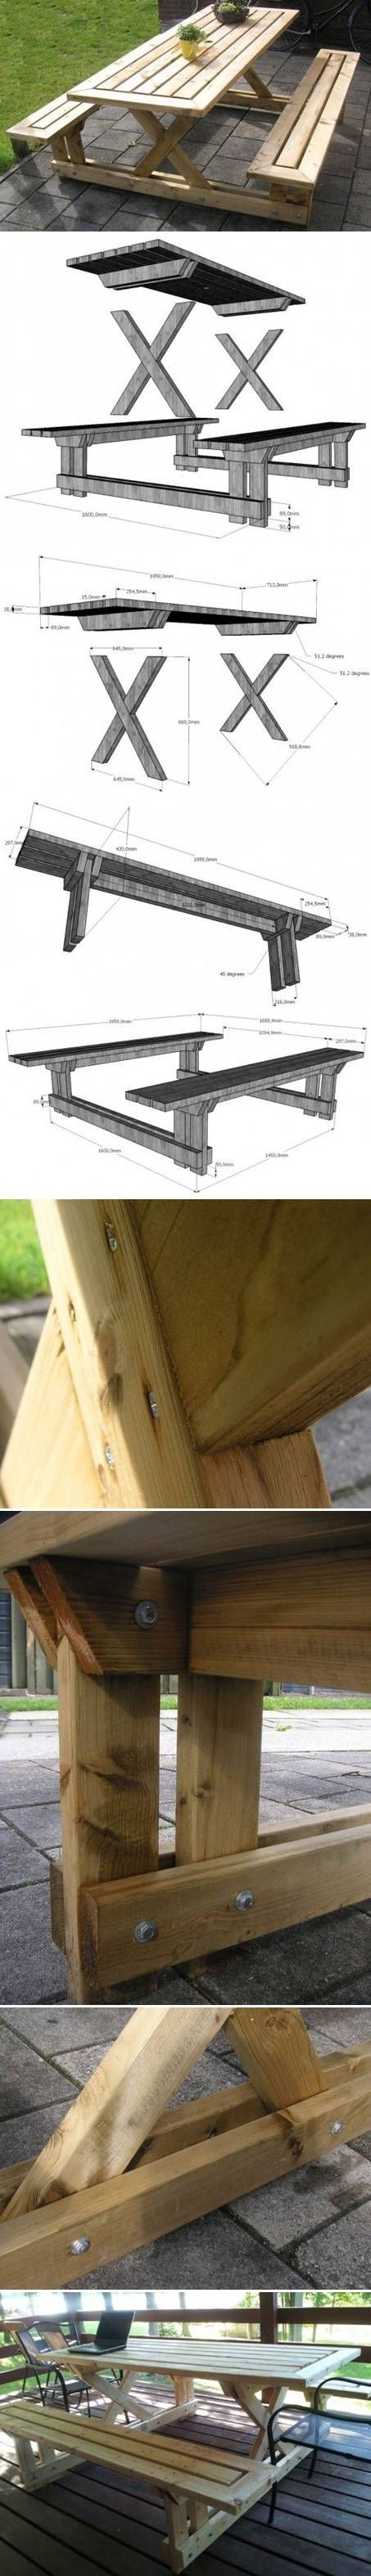 How to Make Garden Bench and Table step by step DIY tutorial instructions | How To Instructions: